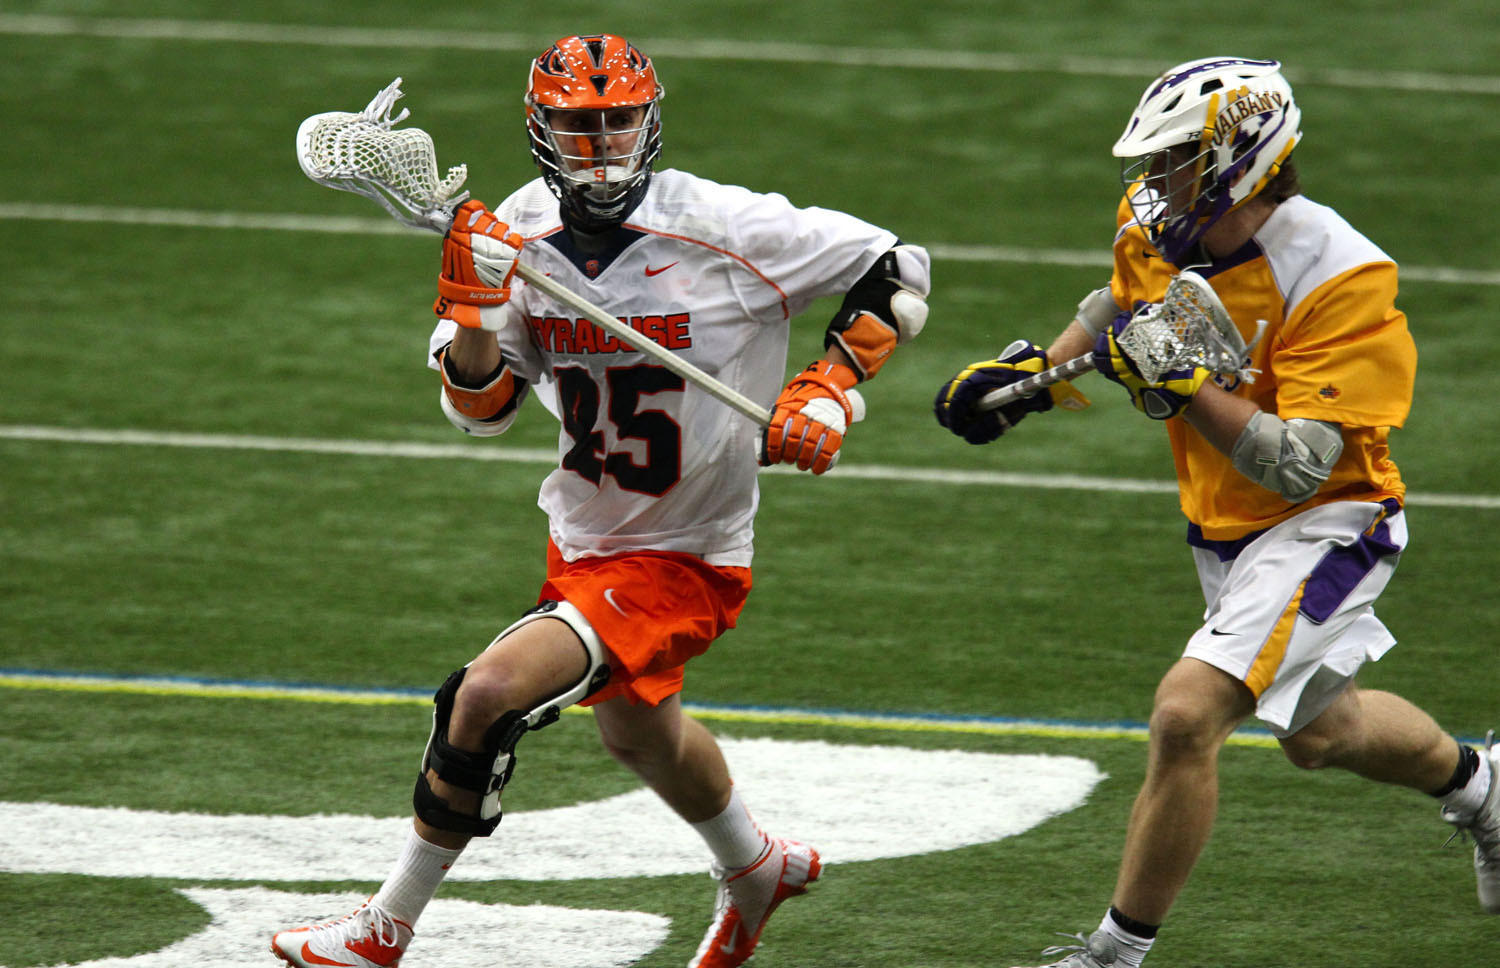 Standout transfer Randy Staats is questionable for Syracuse's game Saturday against Johns Hopkins.